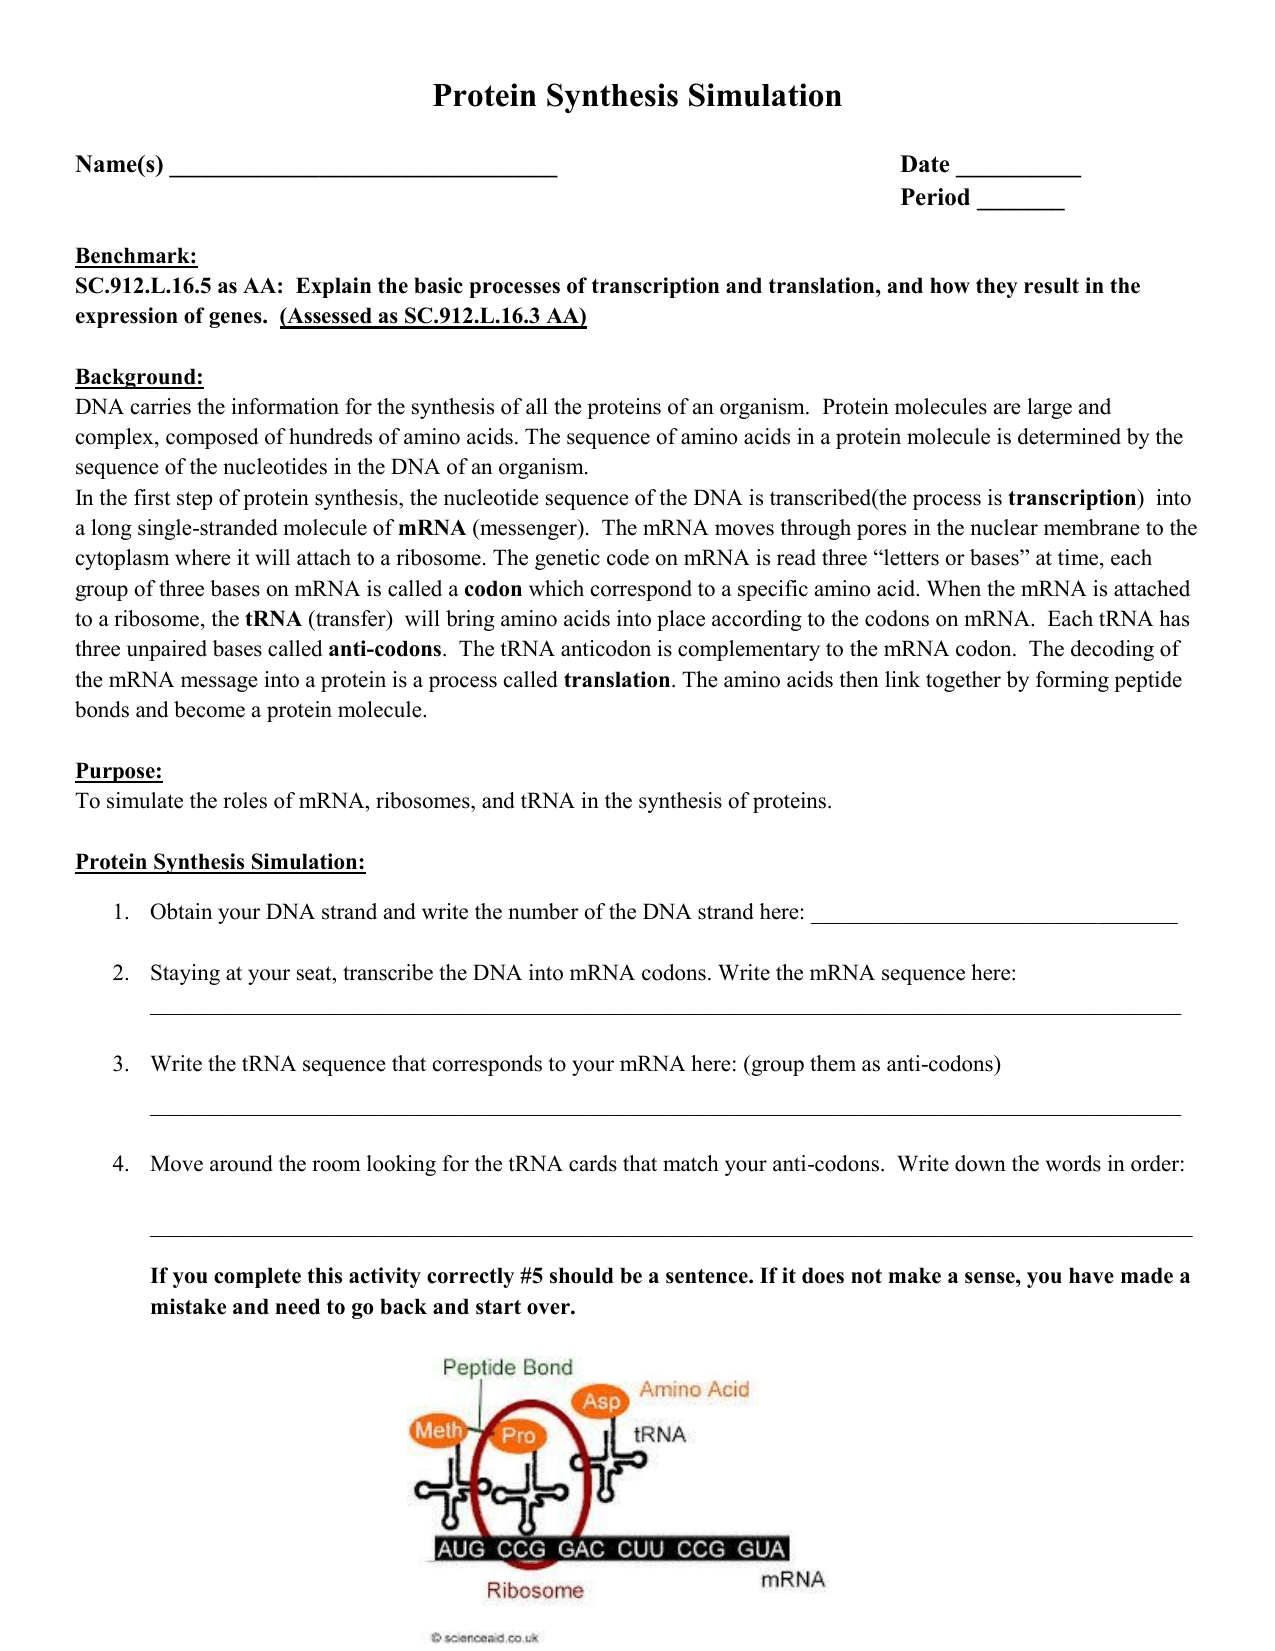 Protein Synthesis Simulation Worksheet Answers